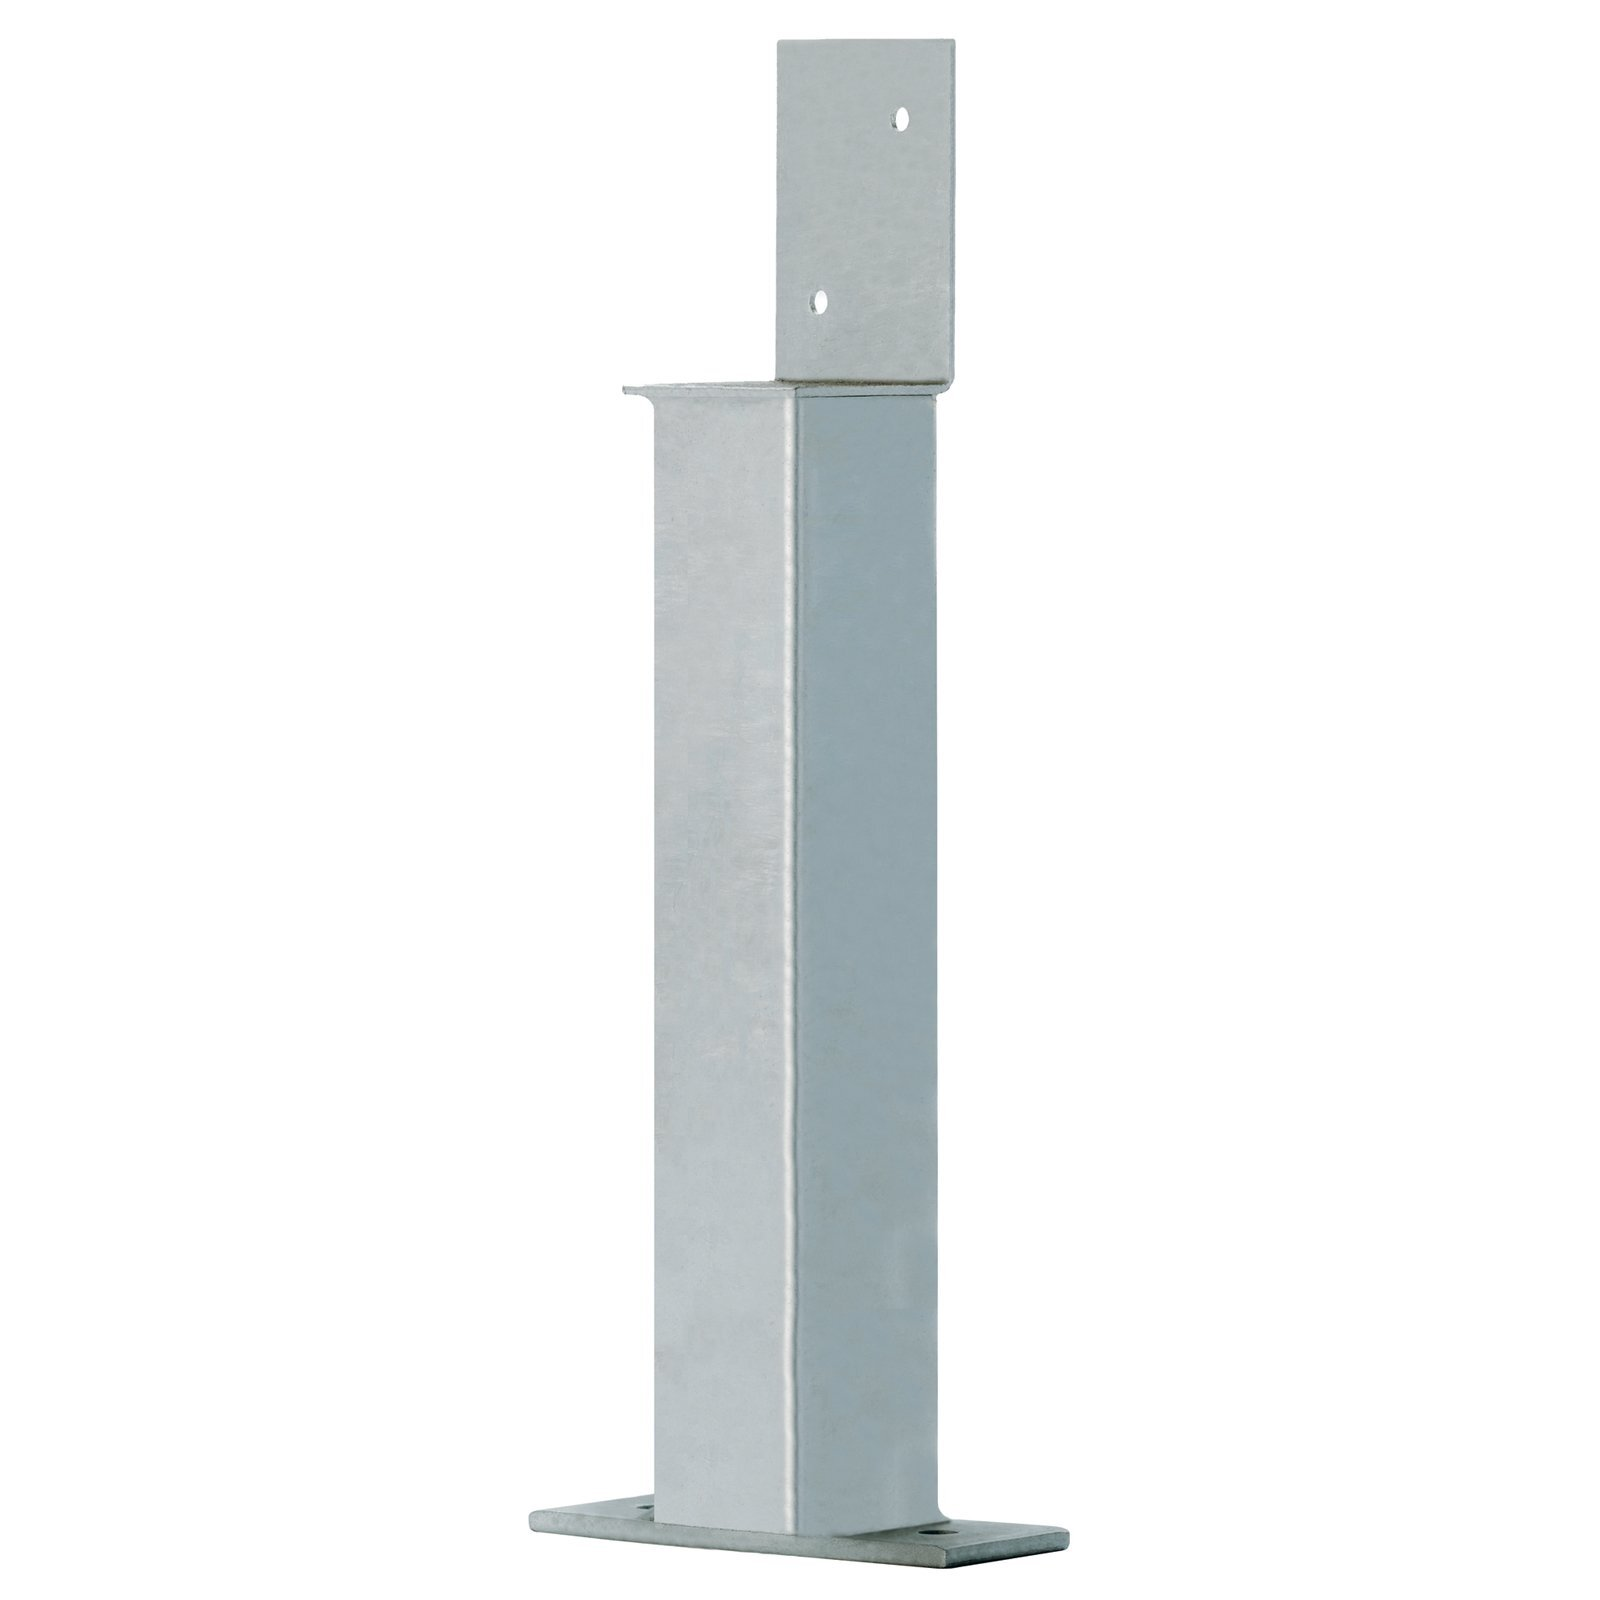 Uni-Pier 75 x 75 x 2800mm Post With Telescopic Head Without Antcap